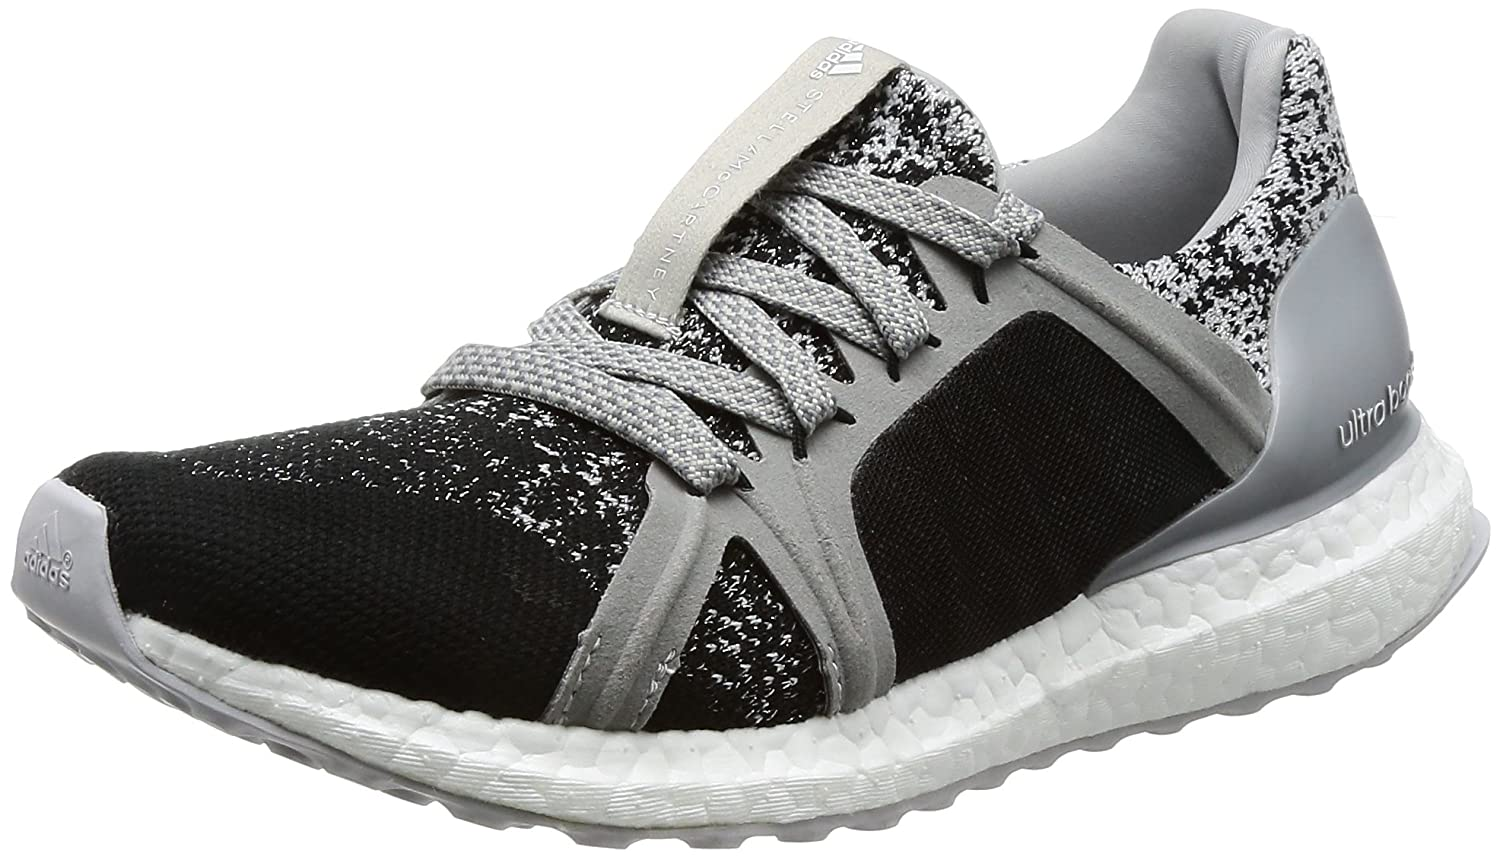 d79f6db54feb3 adidas Women s Ultra Boost Fitness Shoes  Amazon.co.uk  Shoes   Bags